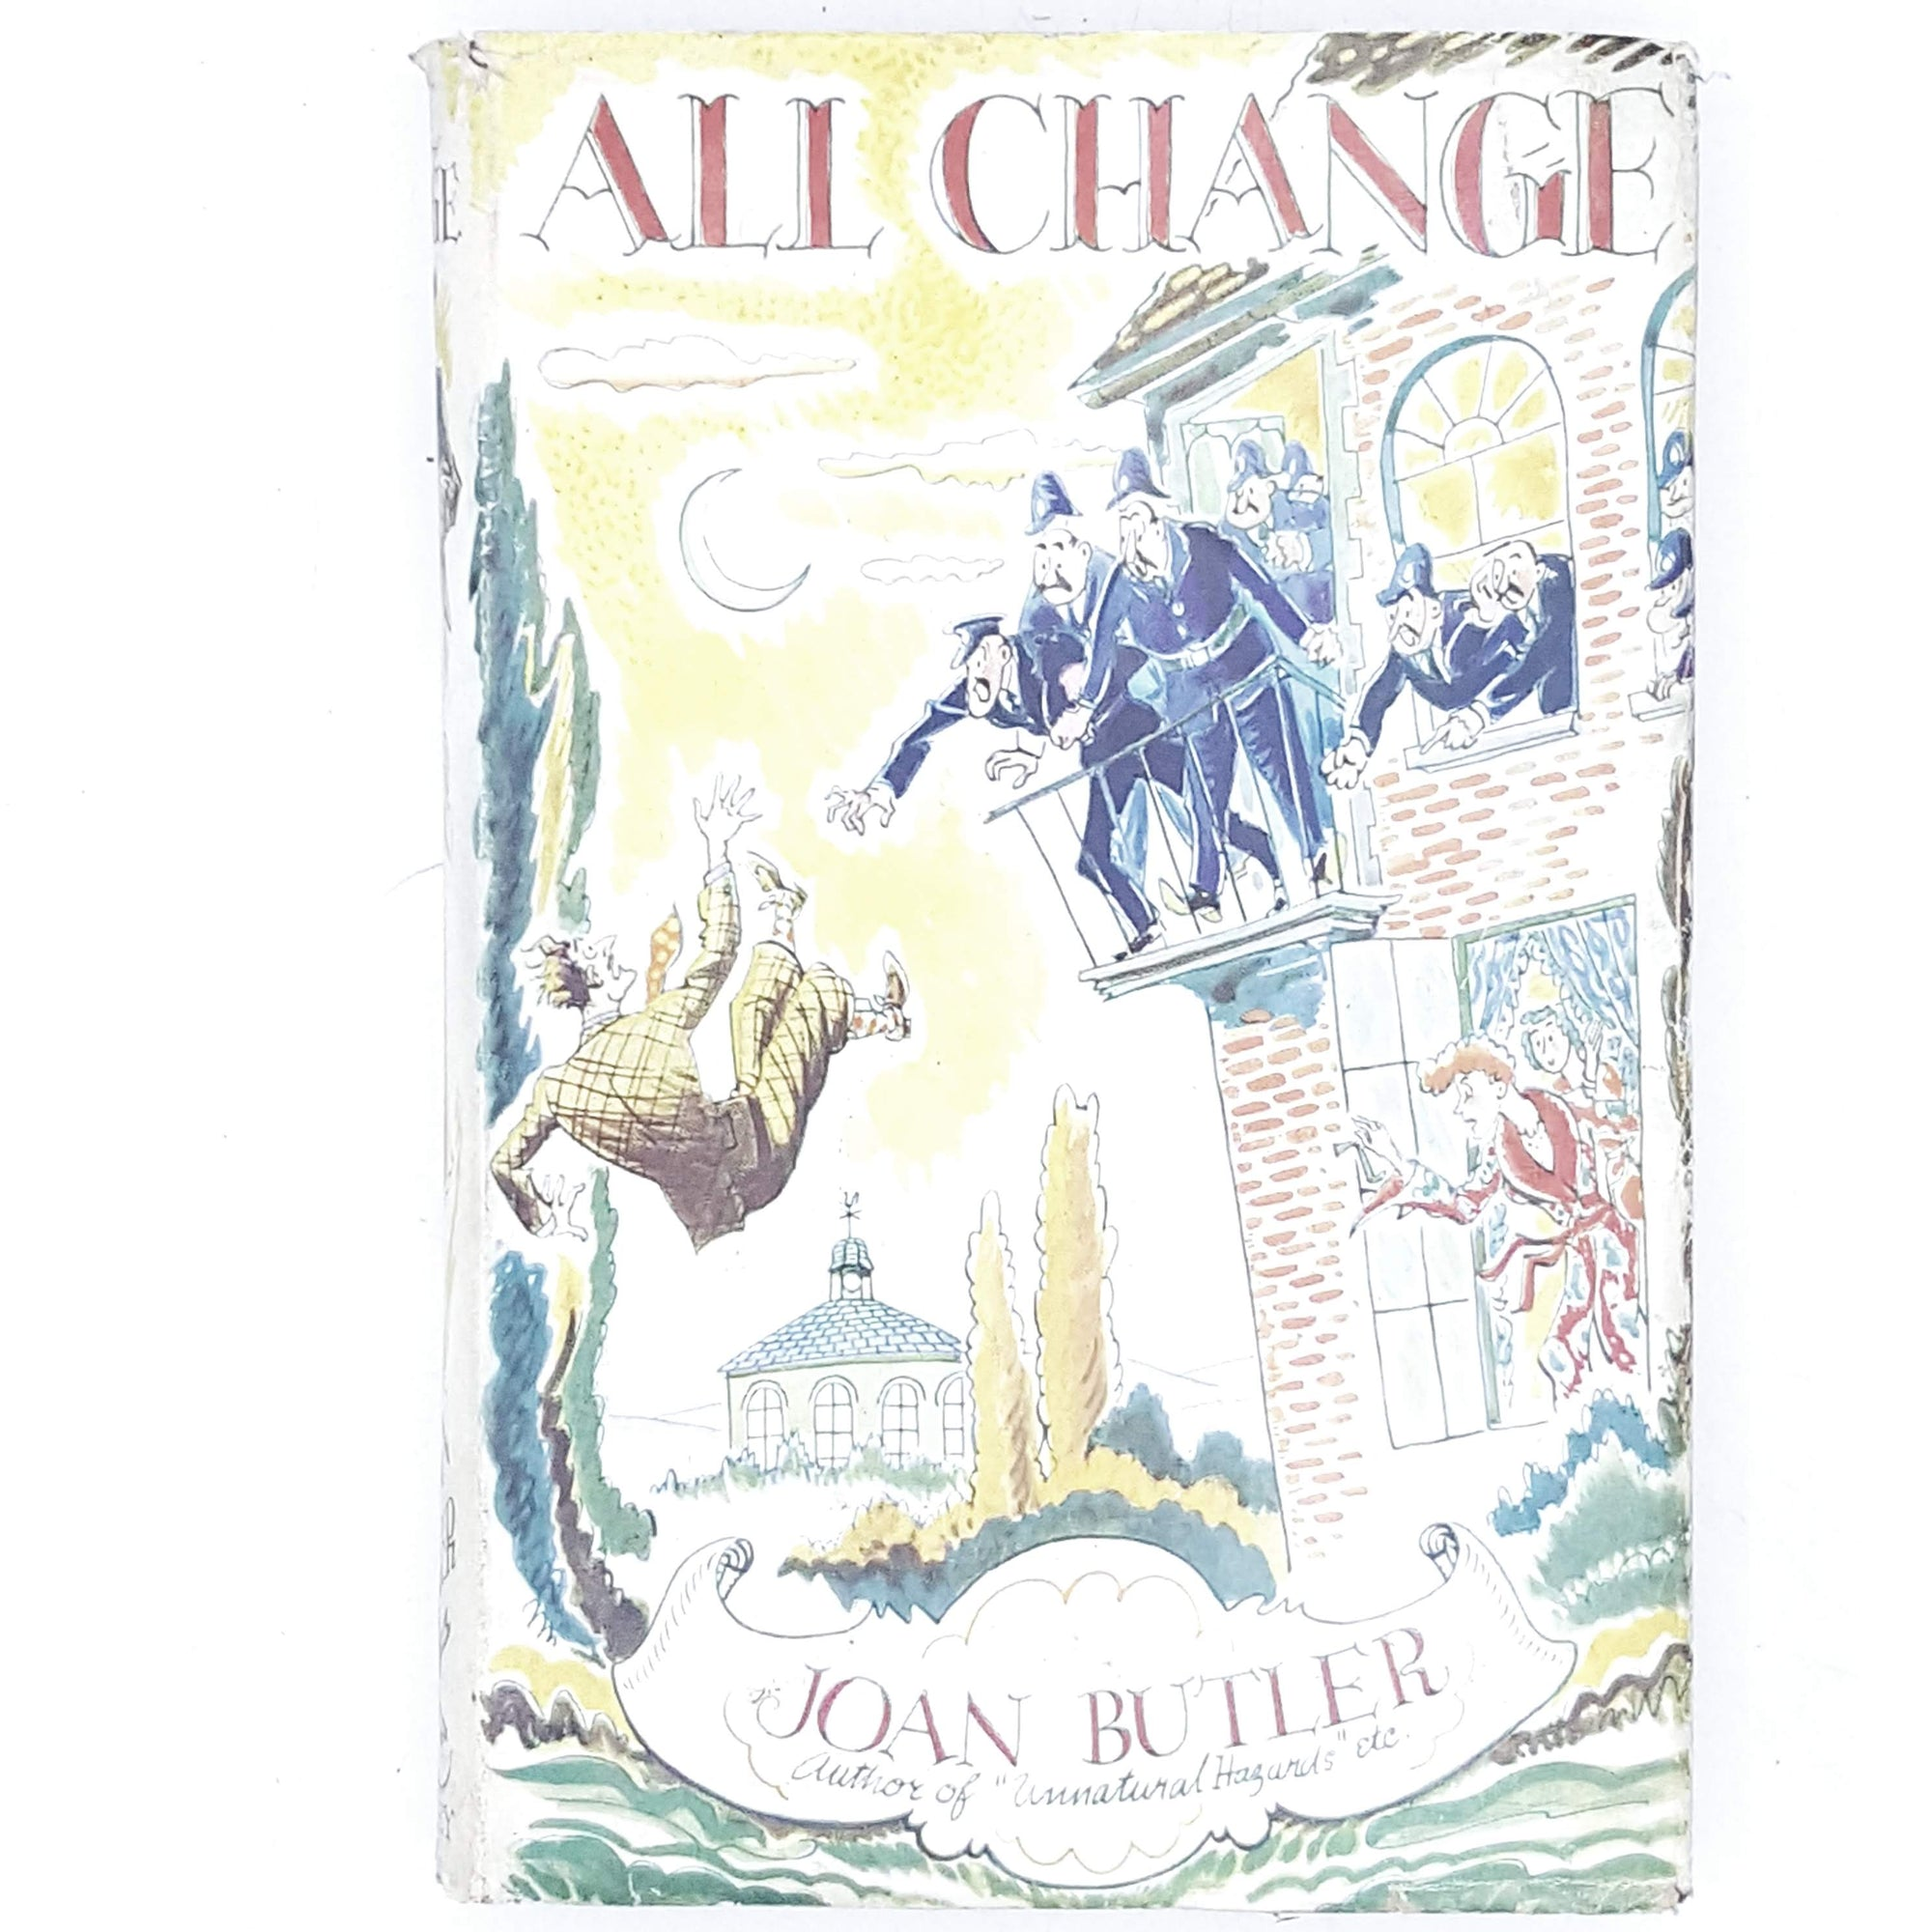 All Change by Joan Butler 1955